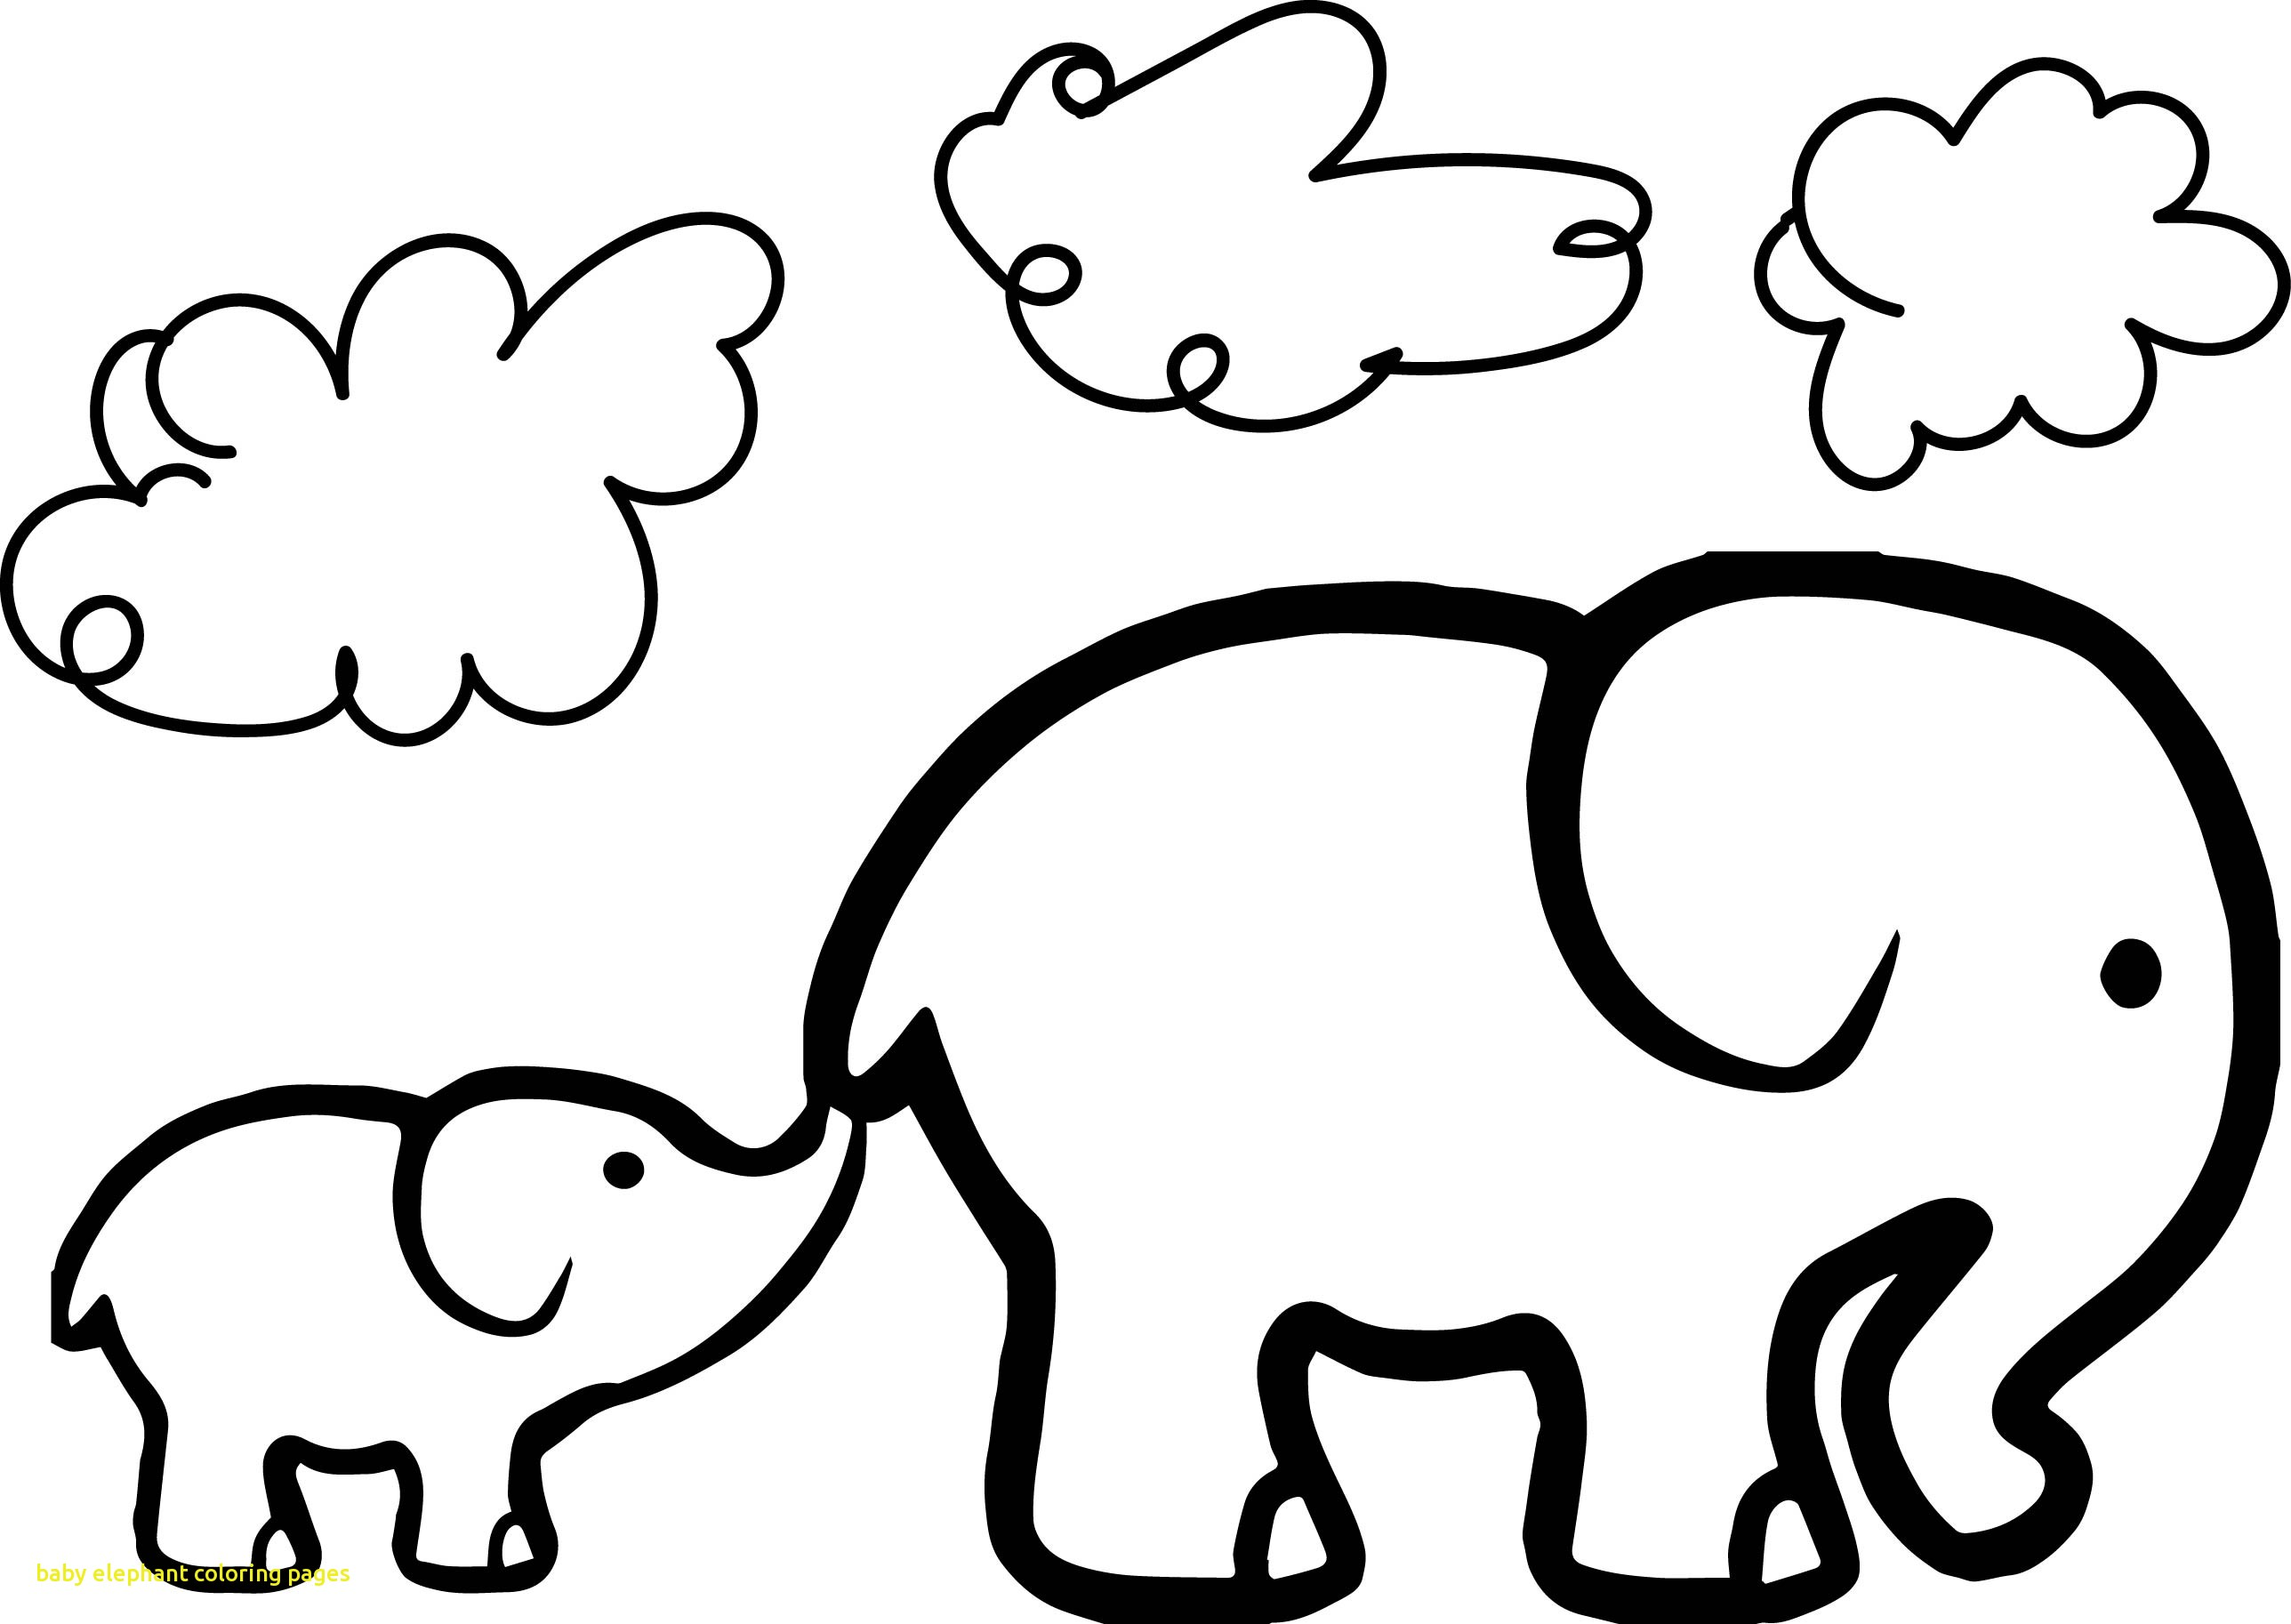 adorable baby elephant coloring pages cute baby elephant drawing at getdrawings free download adorable pages elephant baby coloring